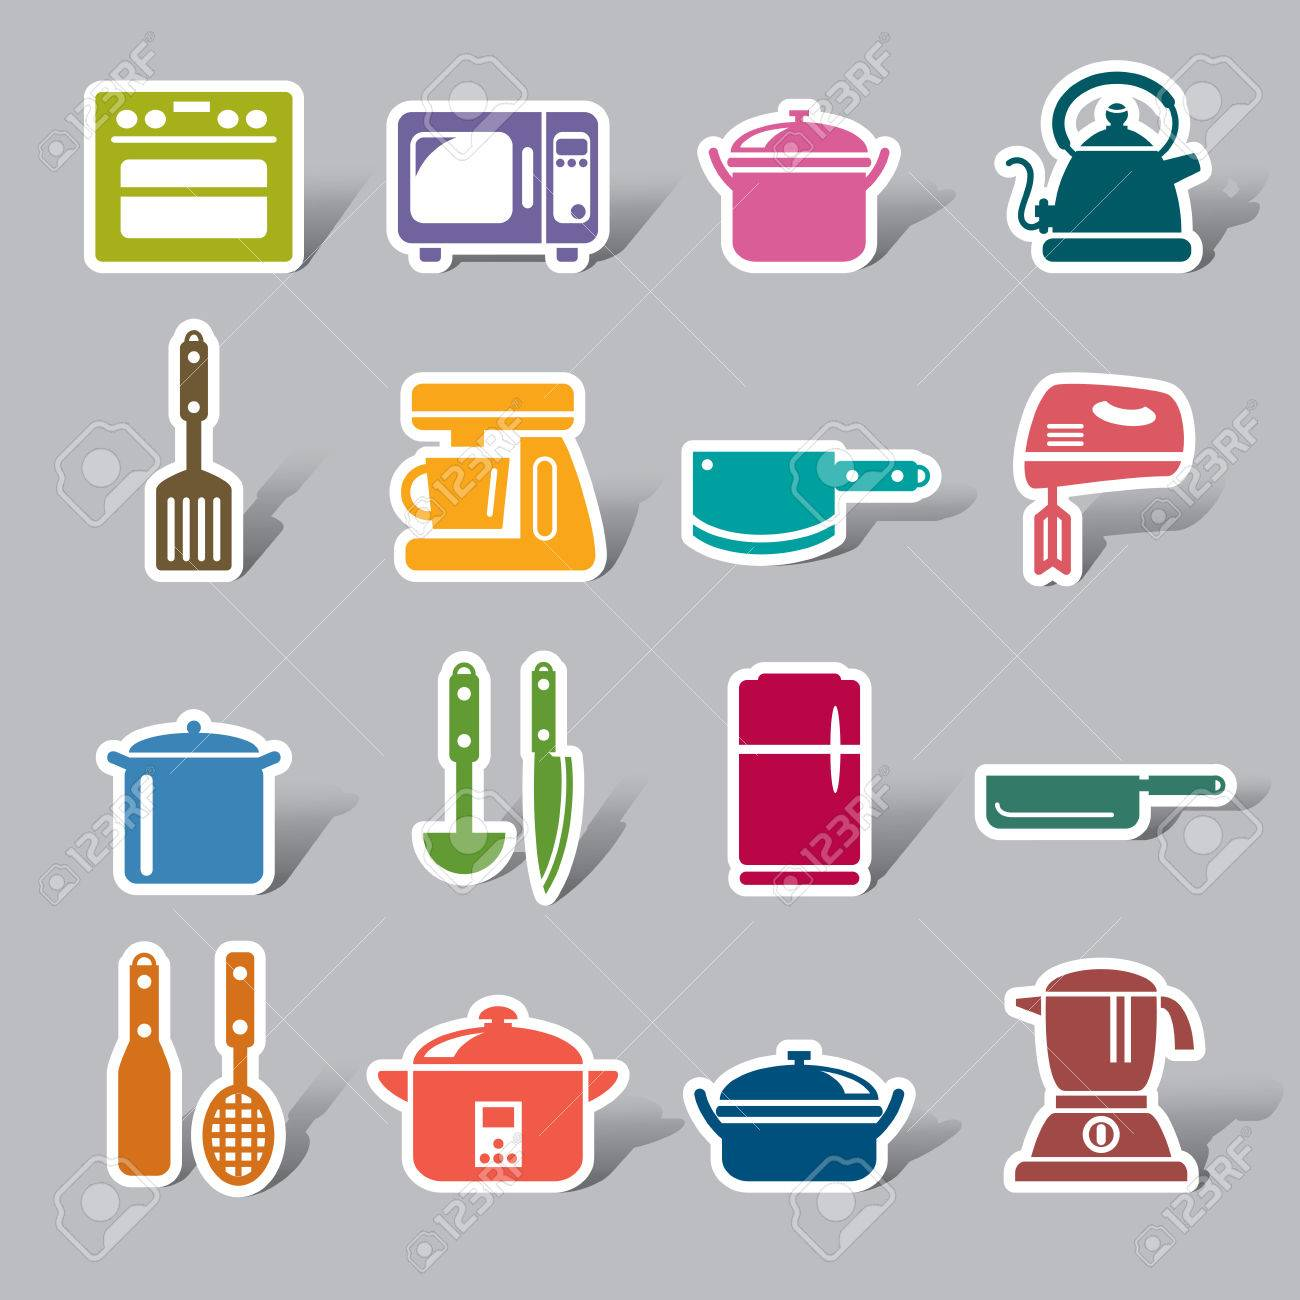 Uncategorized Kitchen Utensils And Appliances kitchen utensils and appliances color icon label royalty free stock vector 33242390